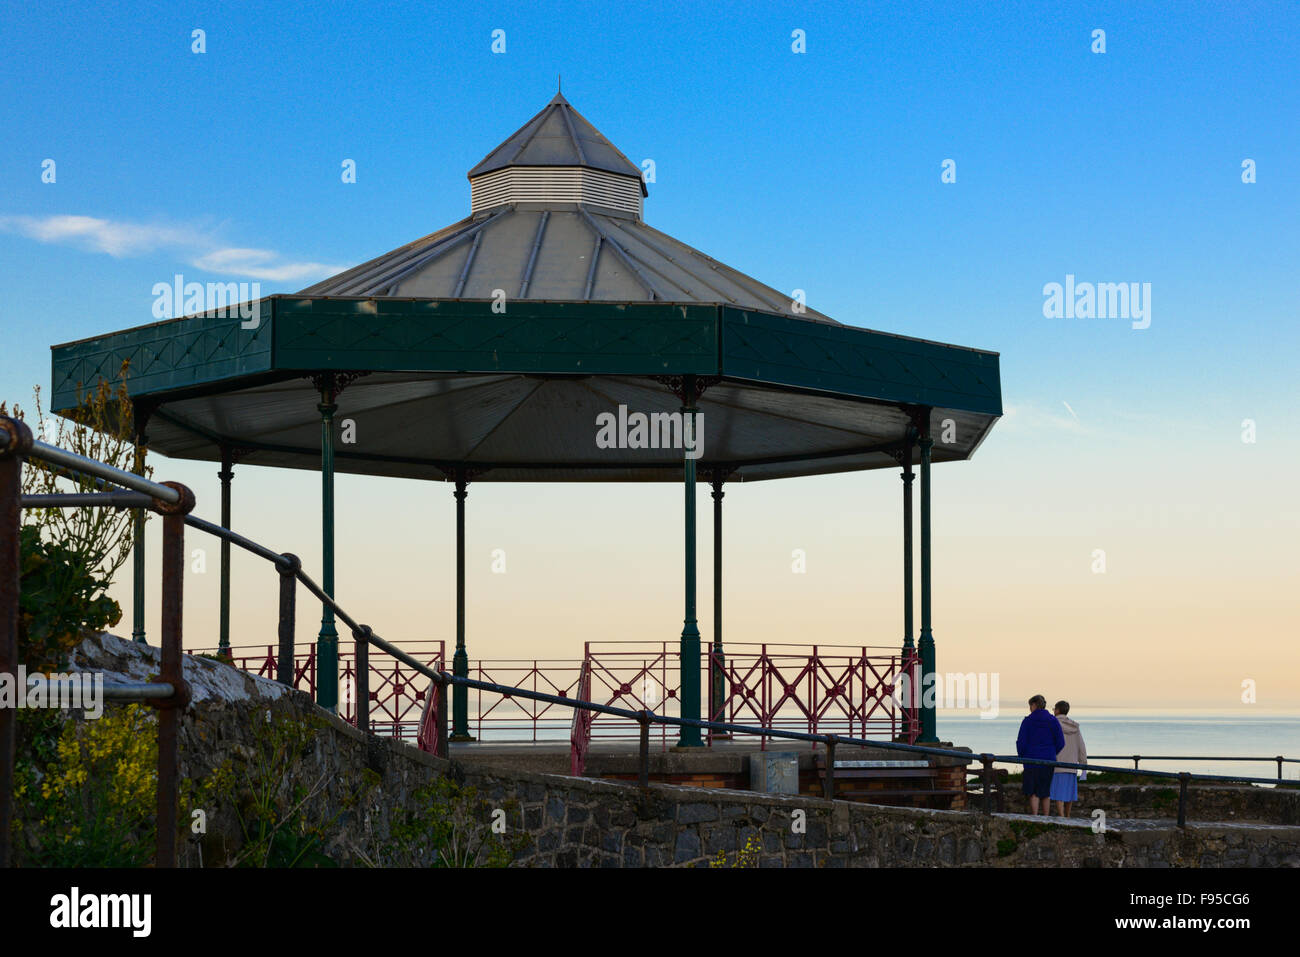 Bandstand. Tenby, Pembrokeshire, west Wales, UK - Stock Image